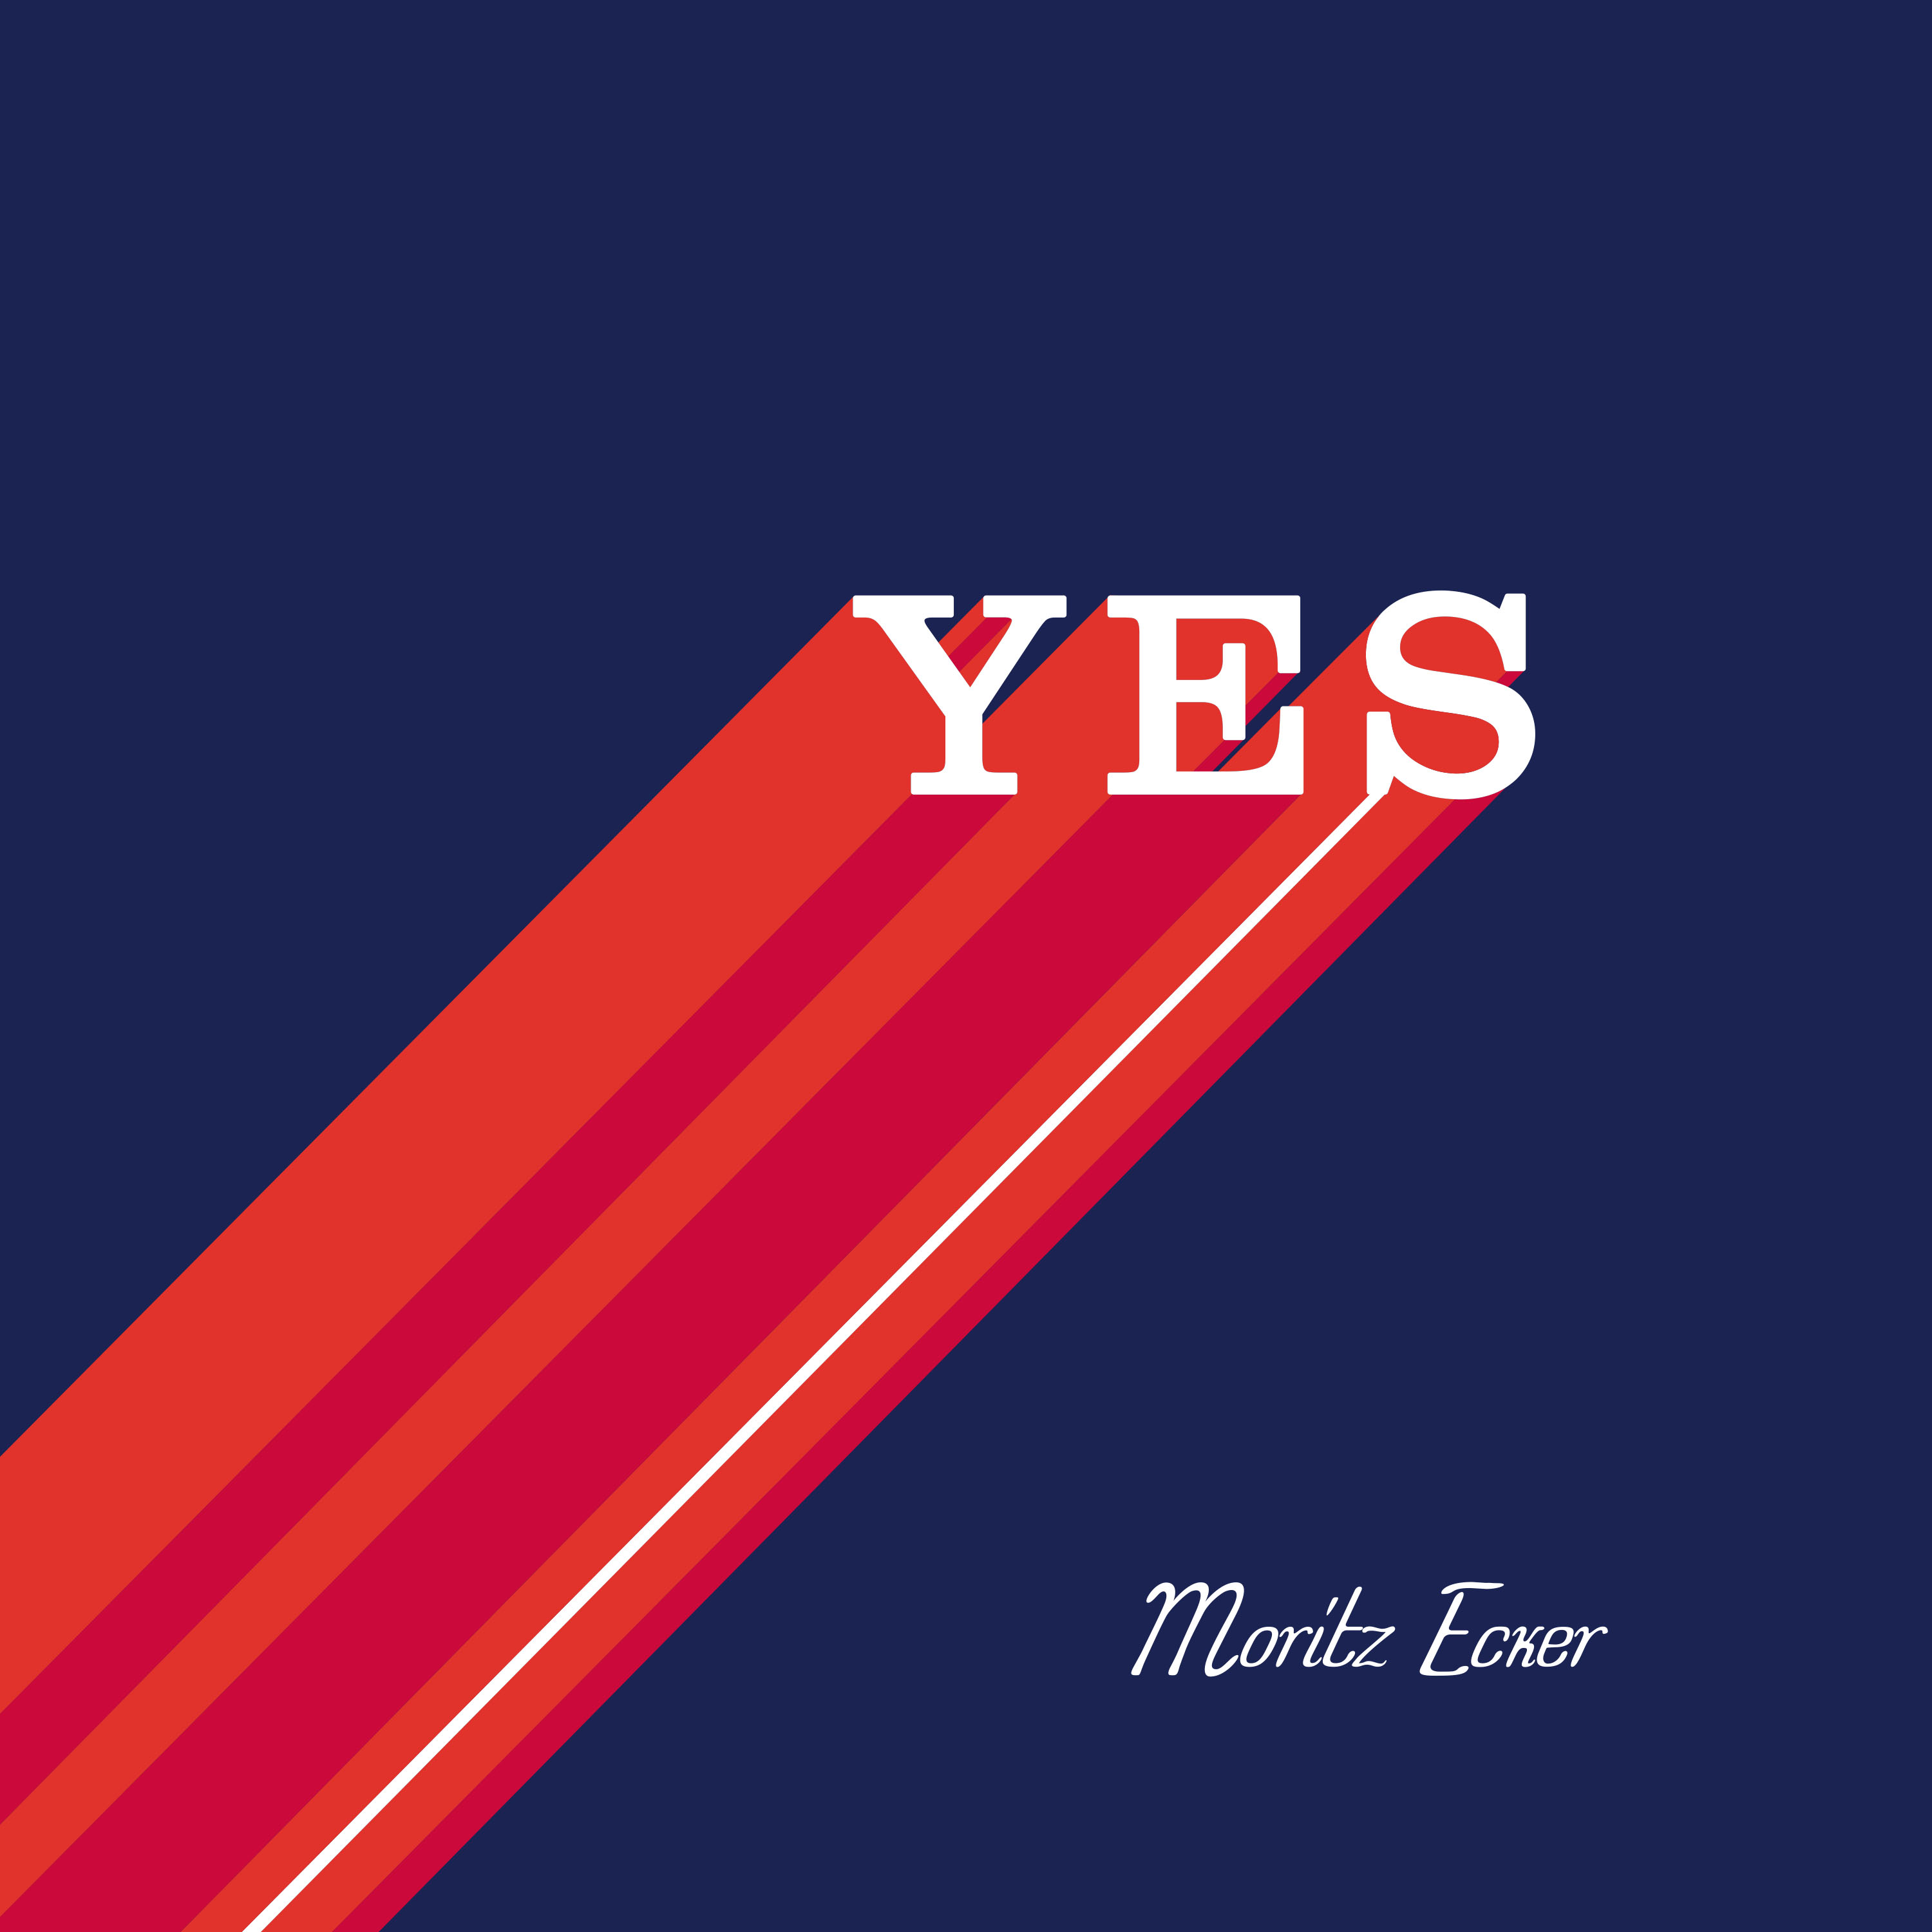 Order The New Album Yes Here